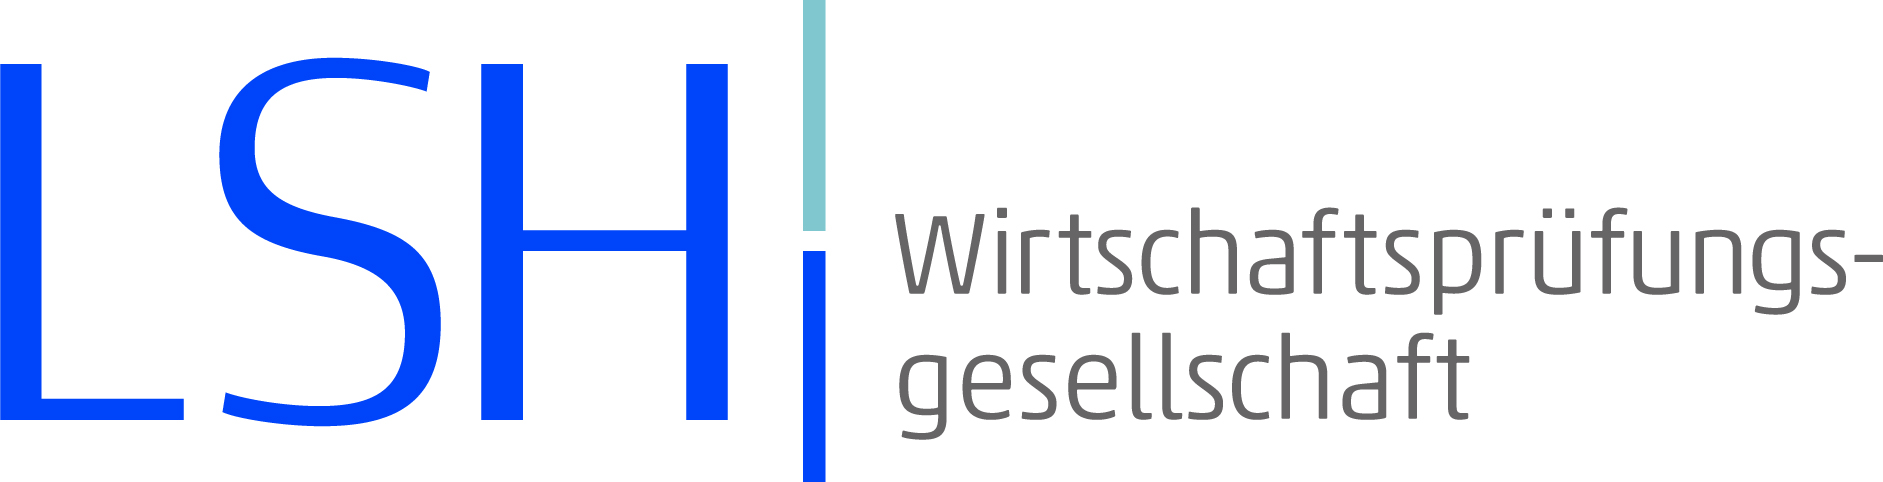 LSH Wirtschaftsprüfer